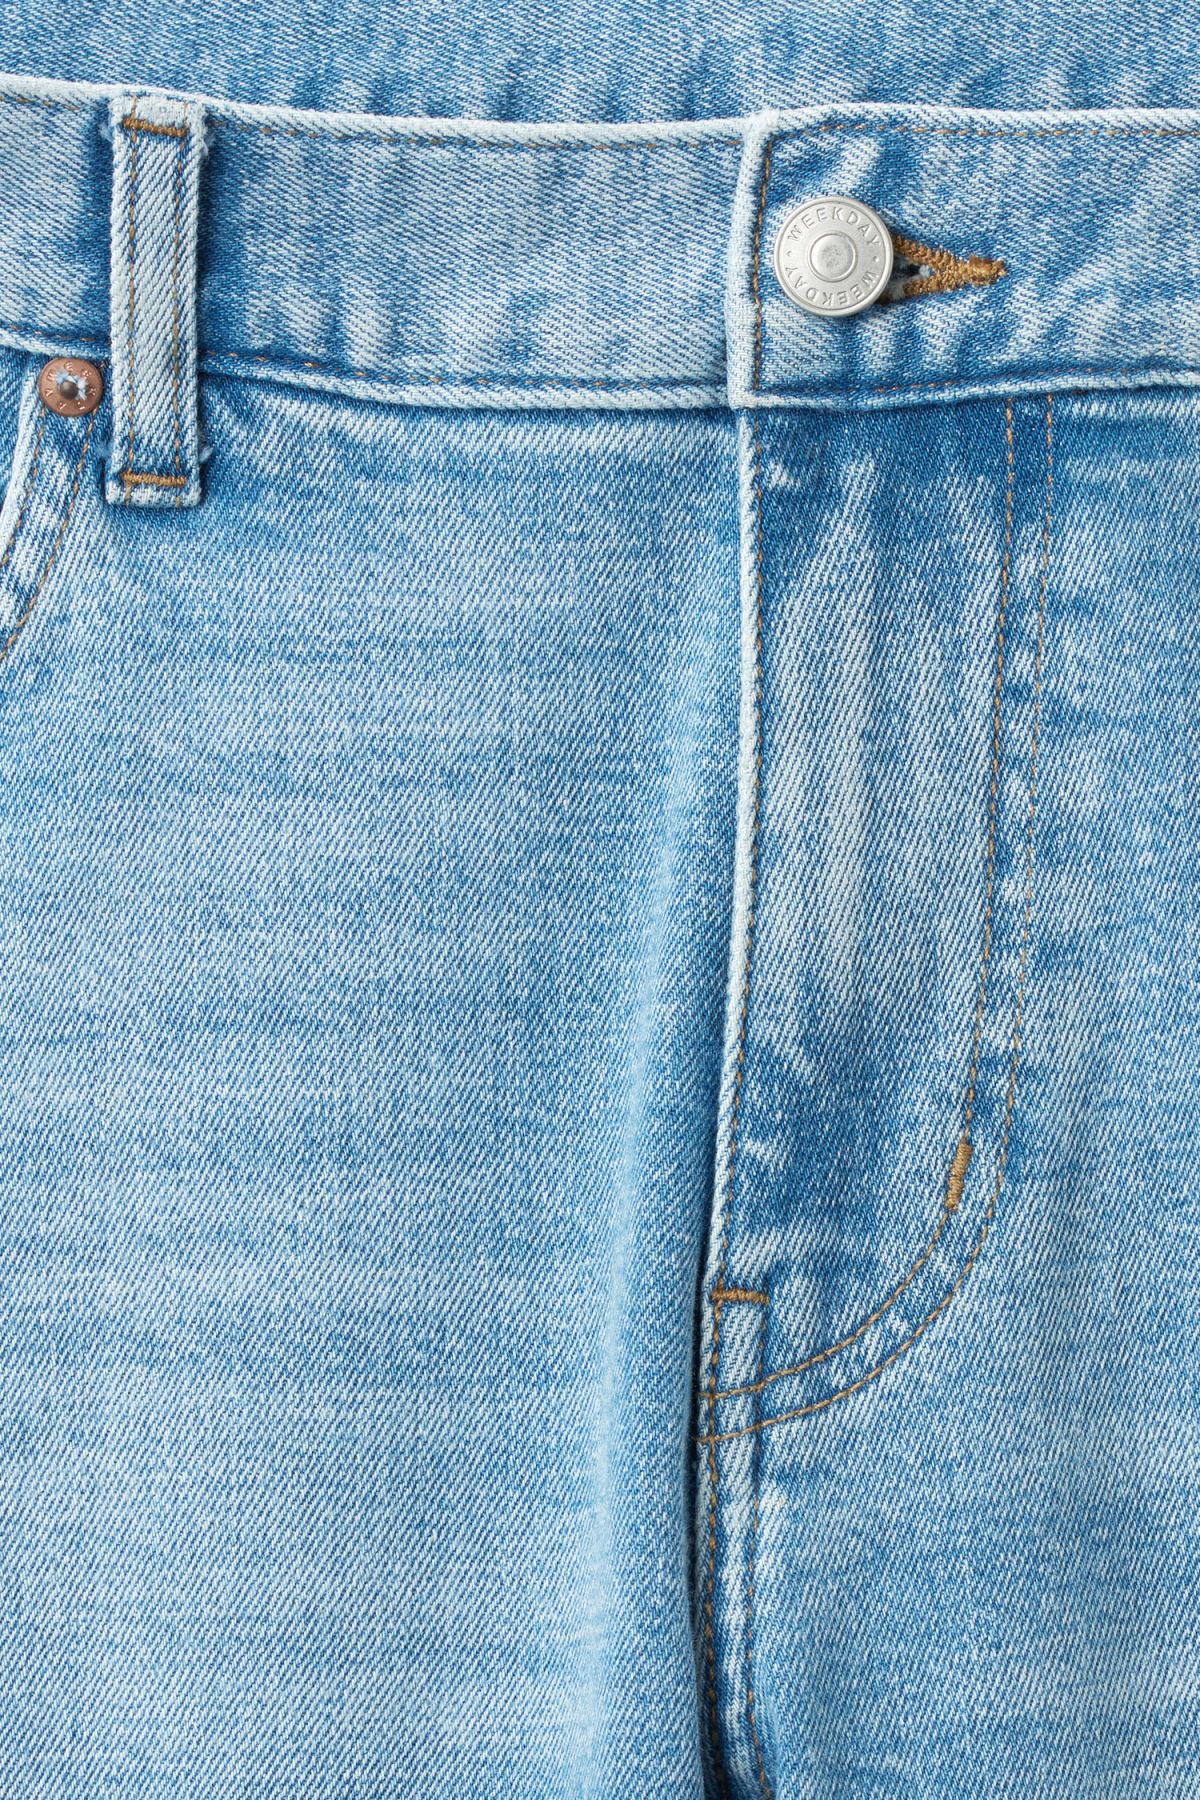 Detailed image of Weekday form ratio blue jeans in blue